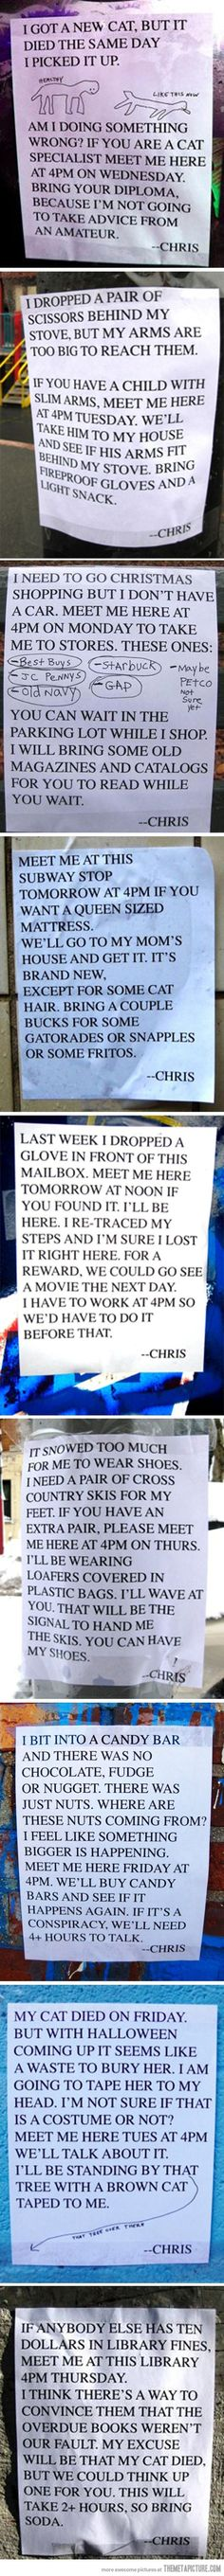 I'm pretty sure I'd like to meet Chris…